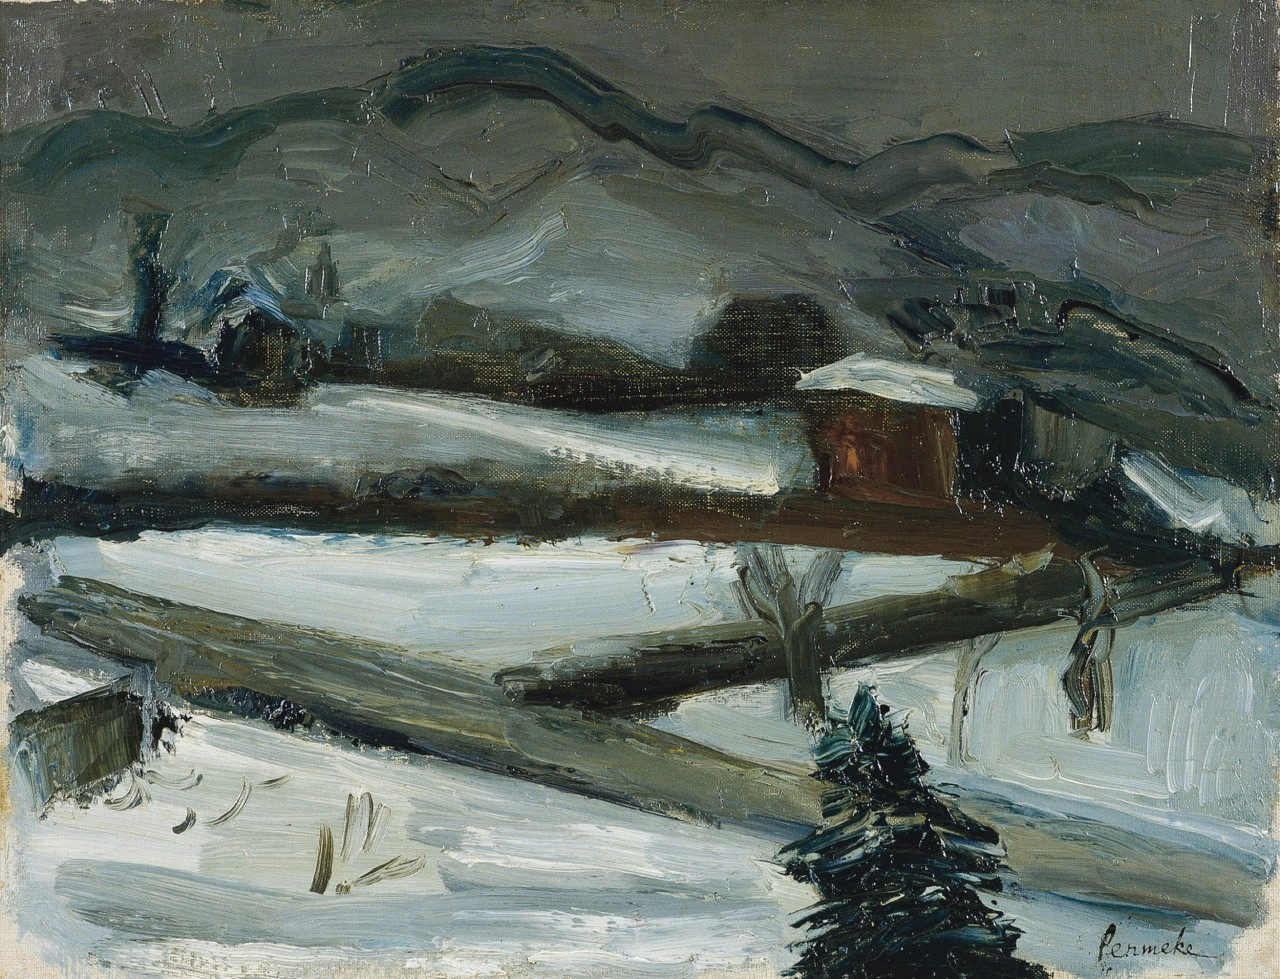 amare-habeo:  Constant Permeke (Belgian, 1886 - 1952)   Winter in Vevey, Swithzerland, 1925 Oil on canvas